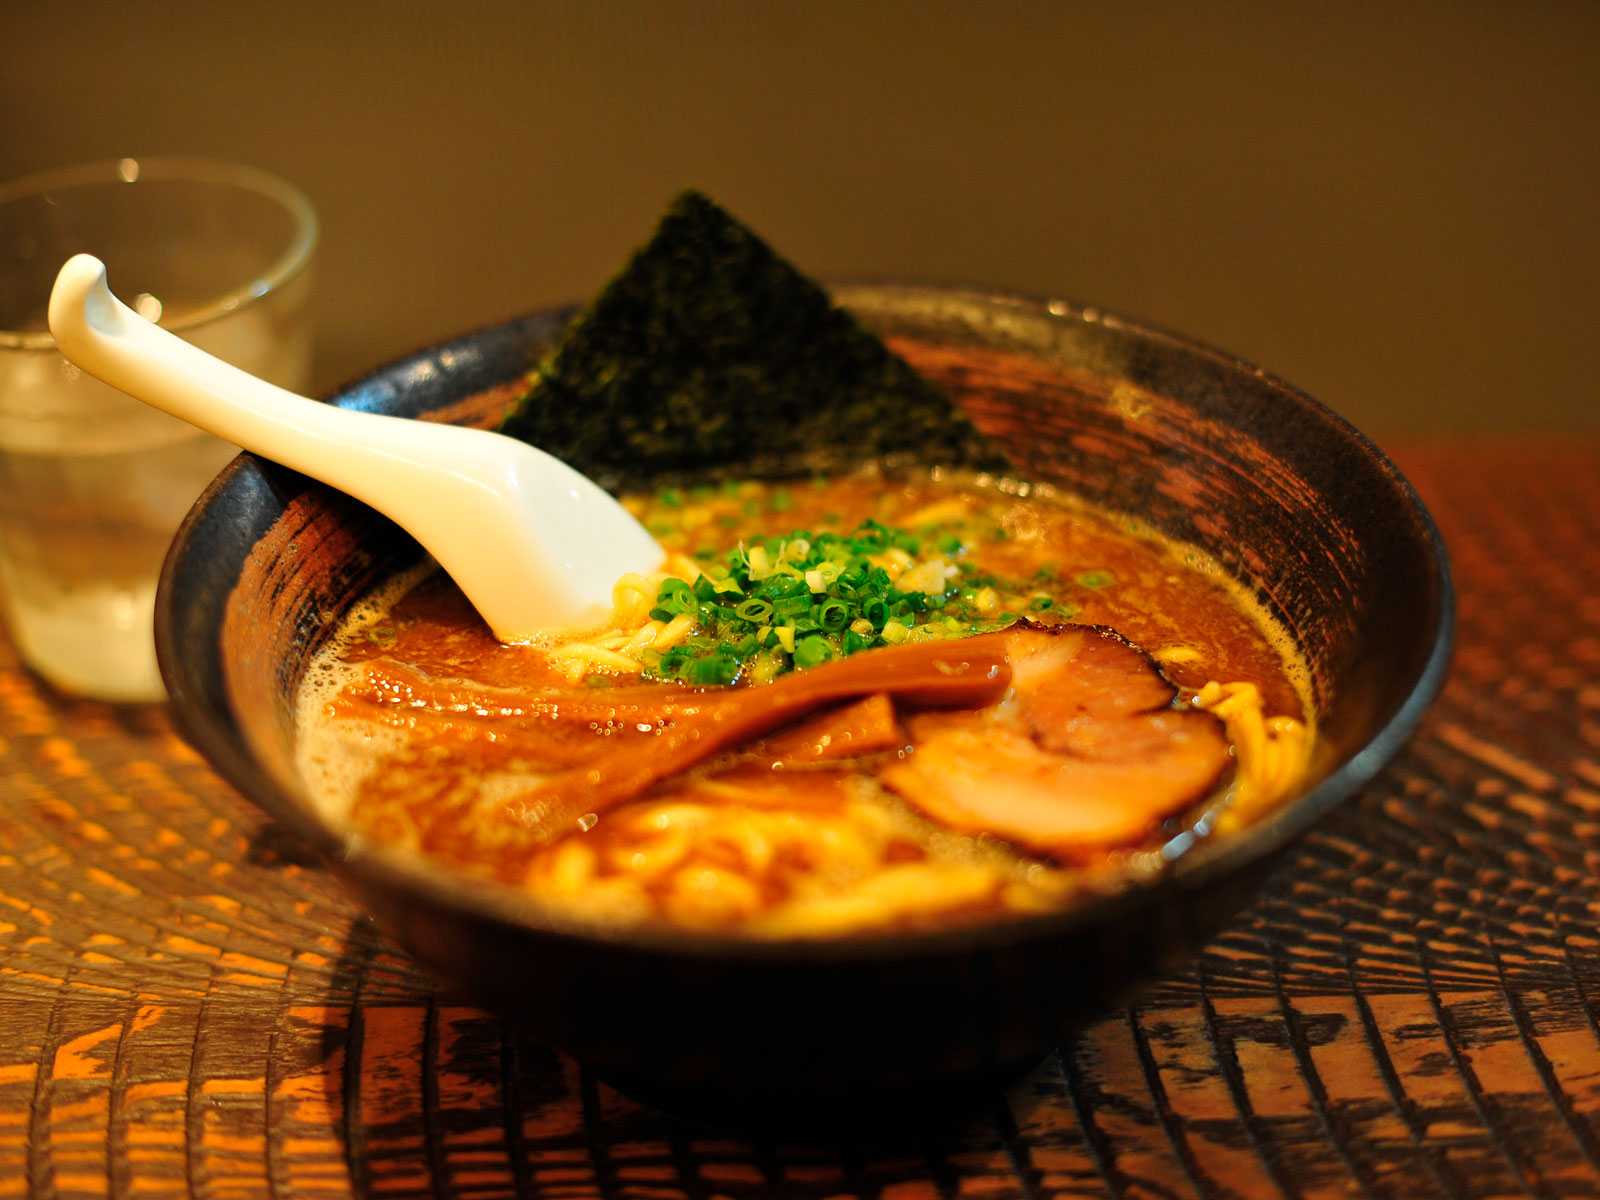 New York's Largest Ichiran to Open in Times Square